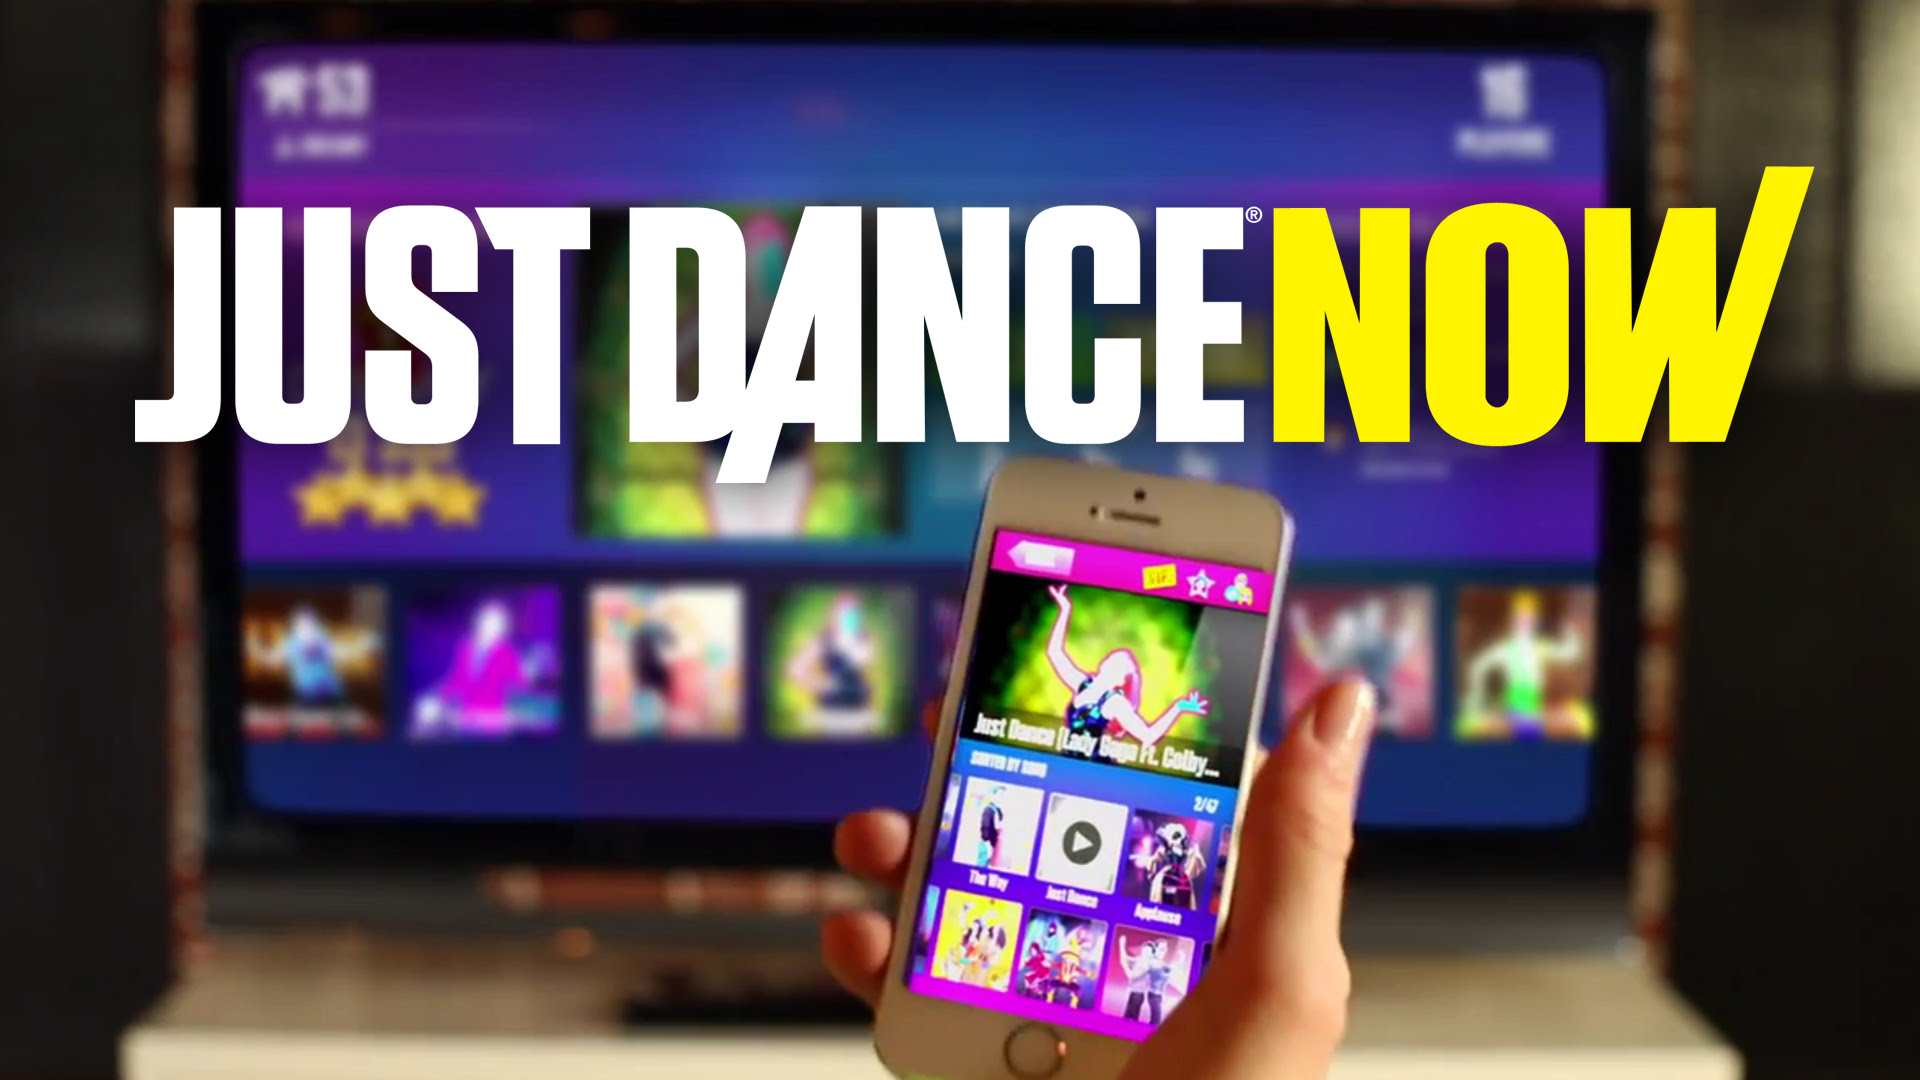 just-dance-now-androidsan